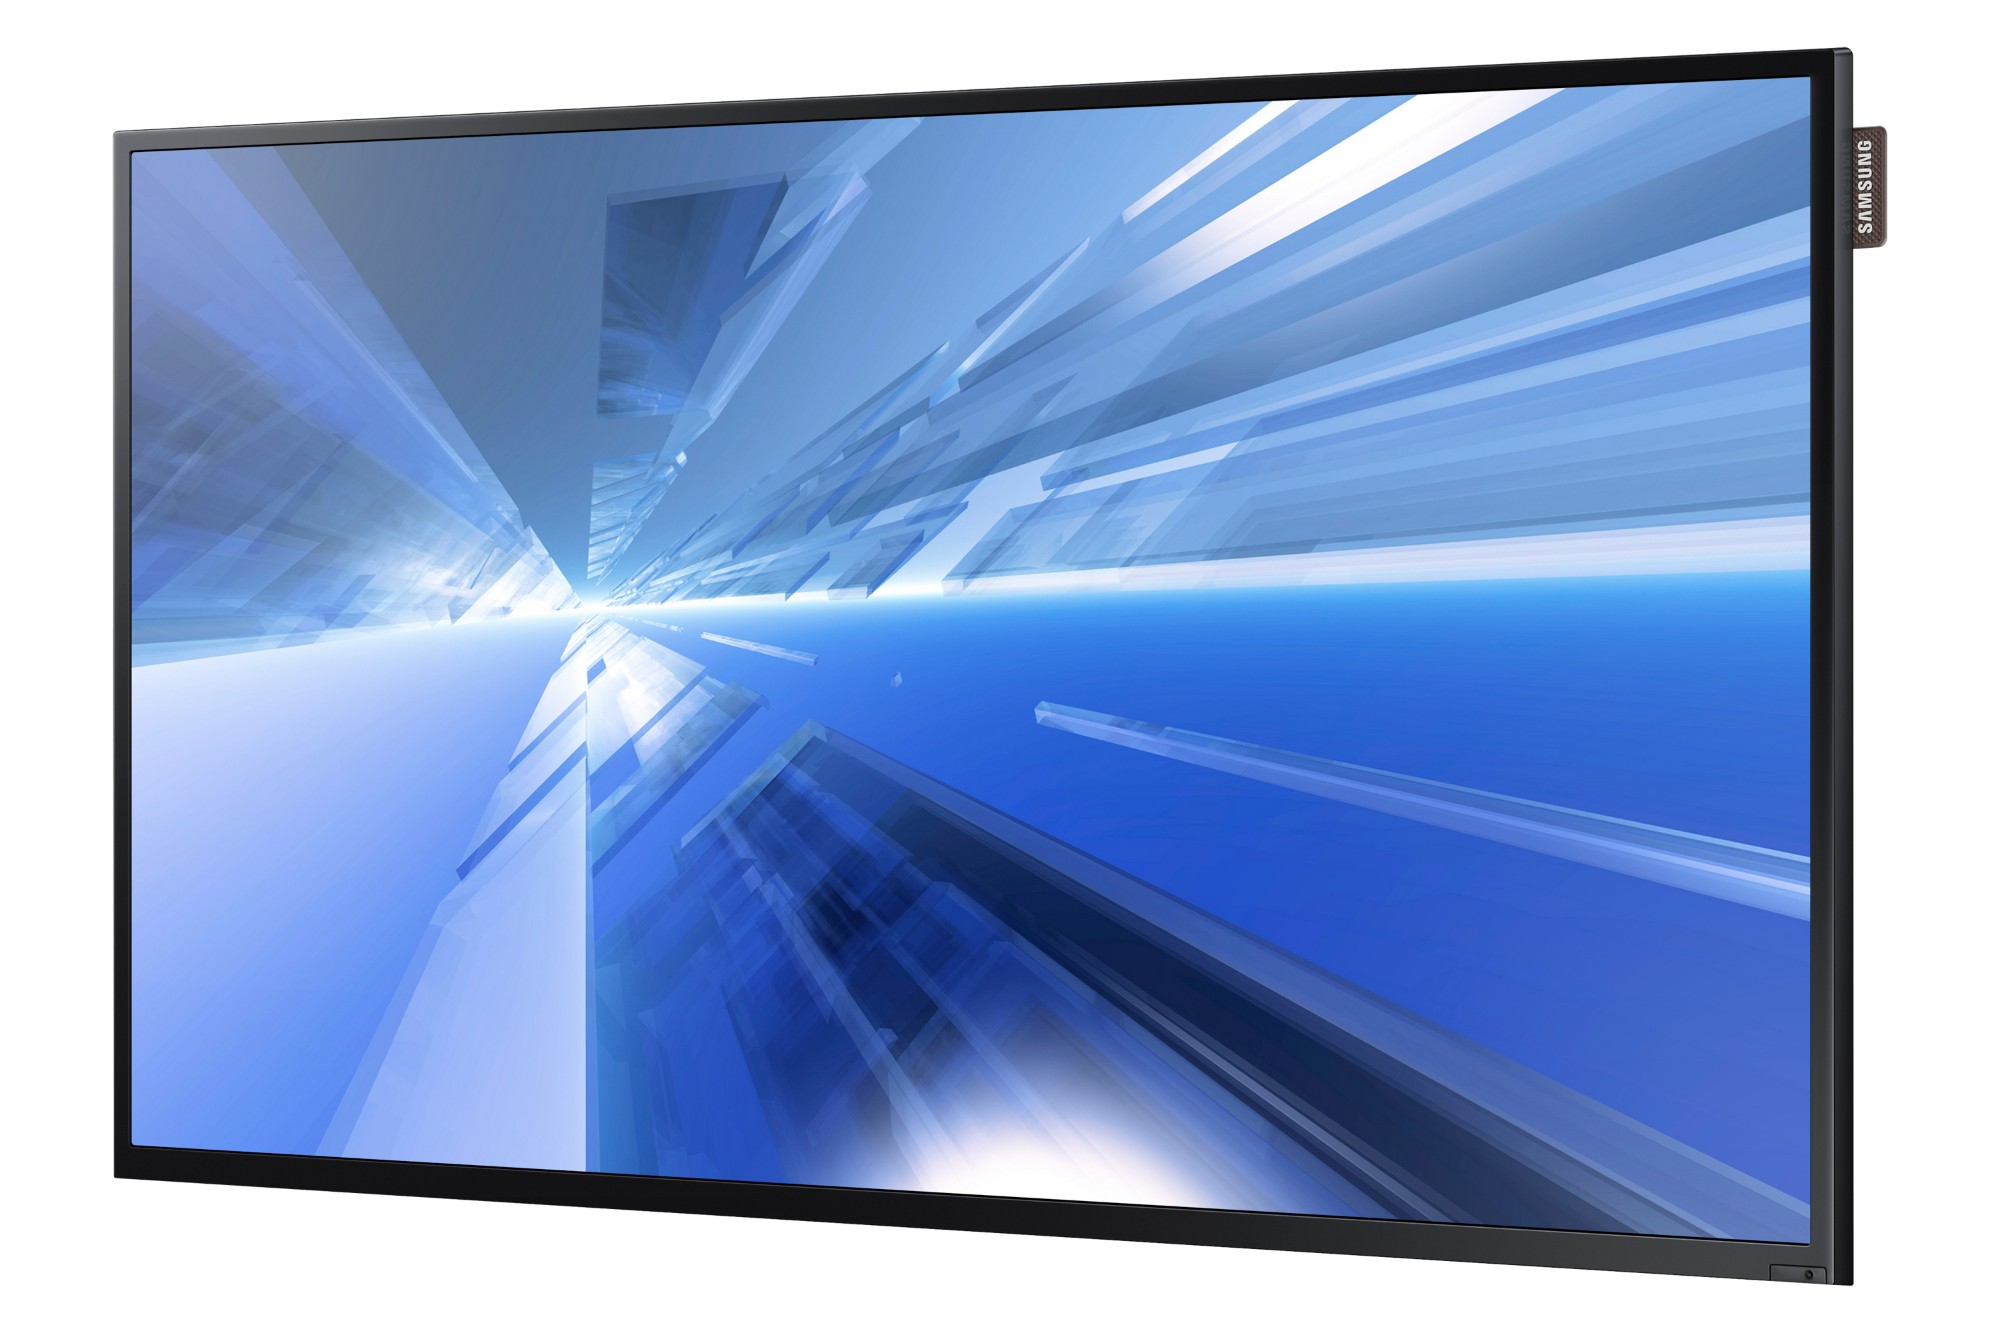 Samsung 32 Led Monitor Db32e 2 In Distributor Wholesale Stock For